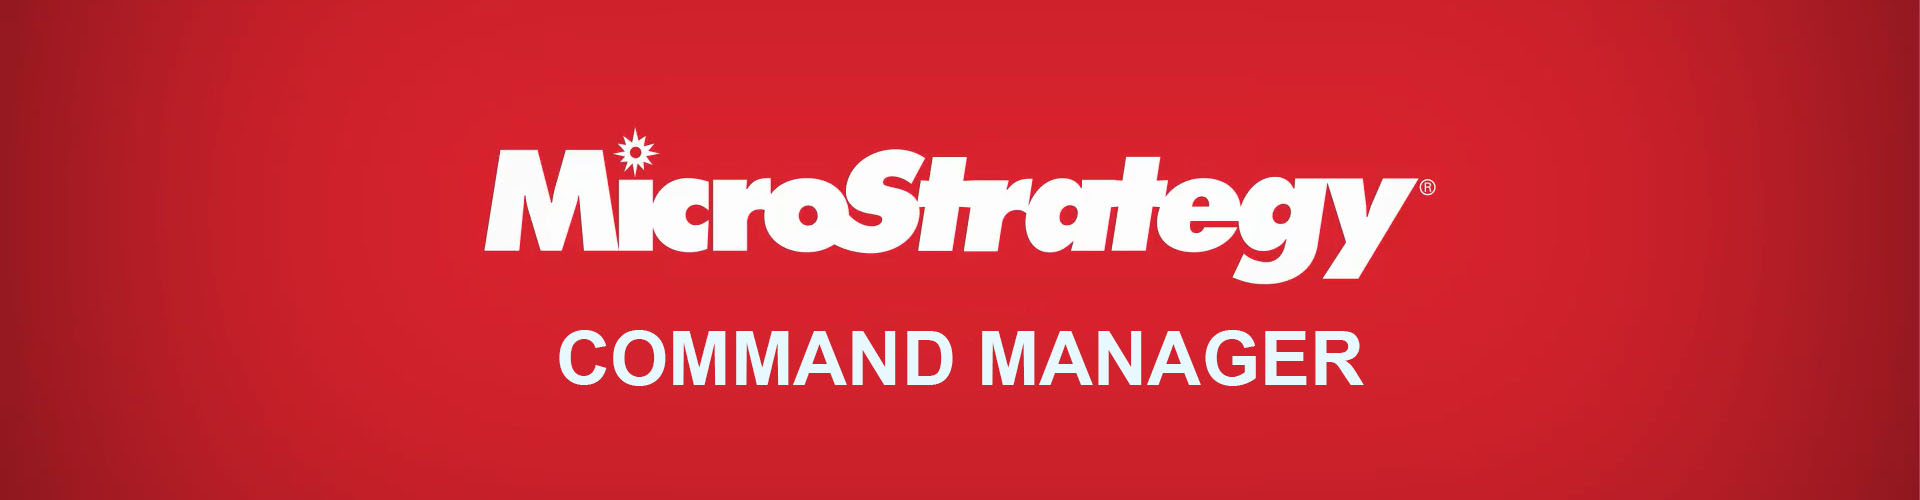 MicroStrategy Command Manager